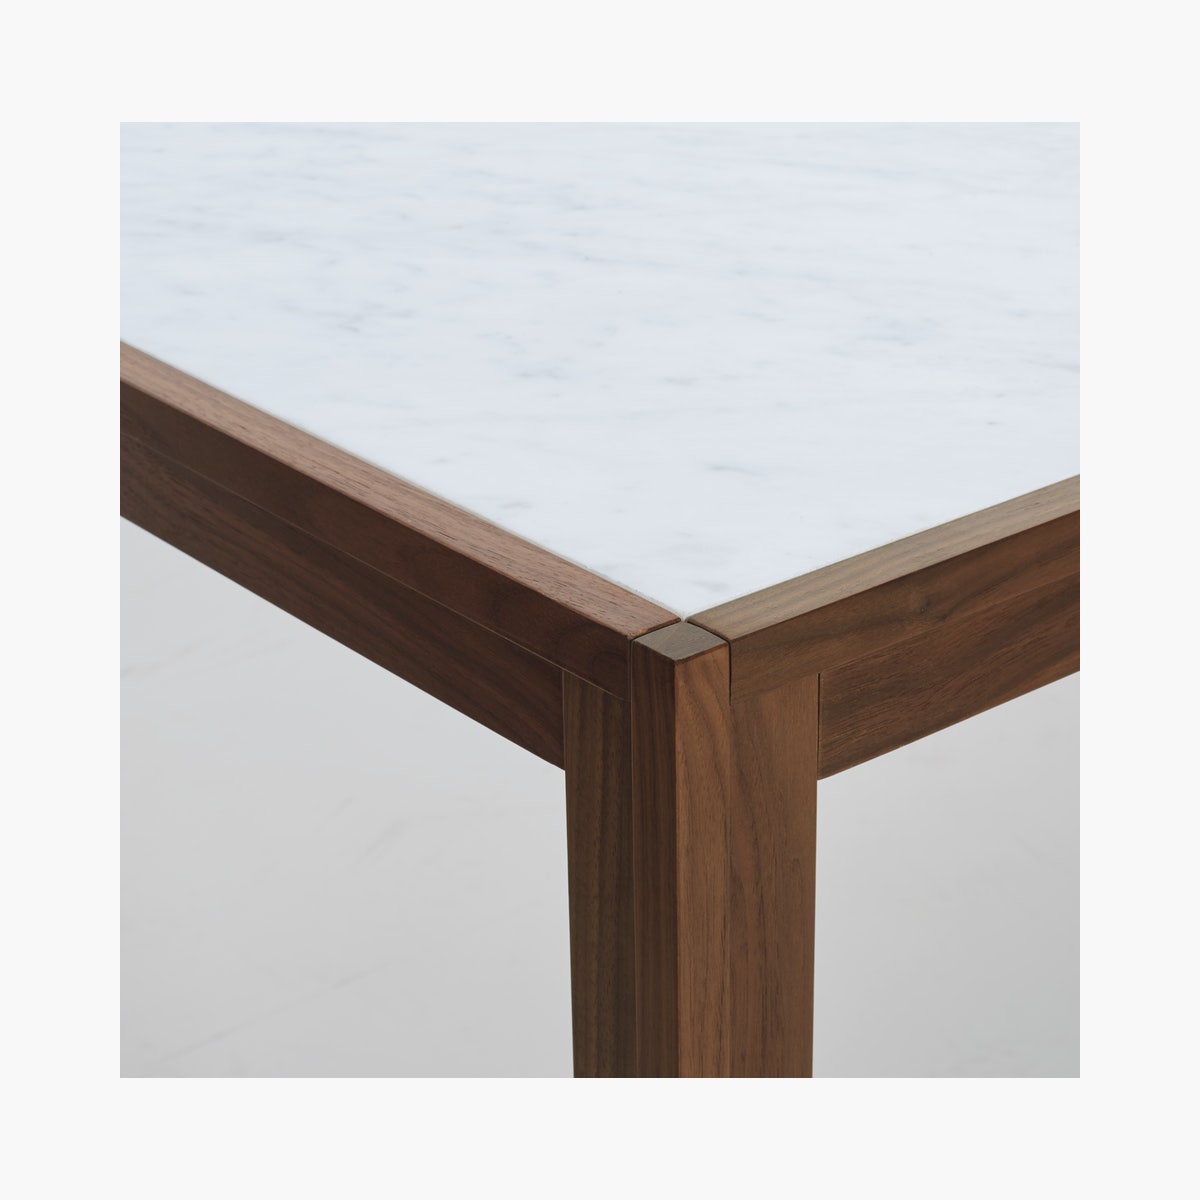 Doubleframe™ Table